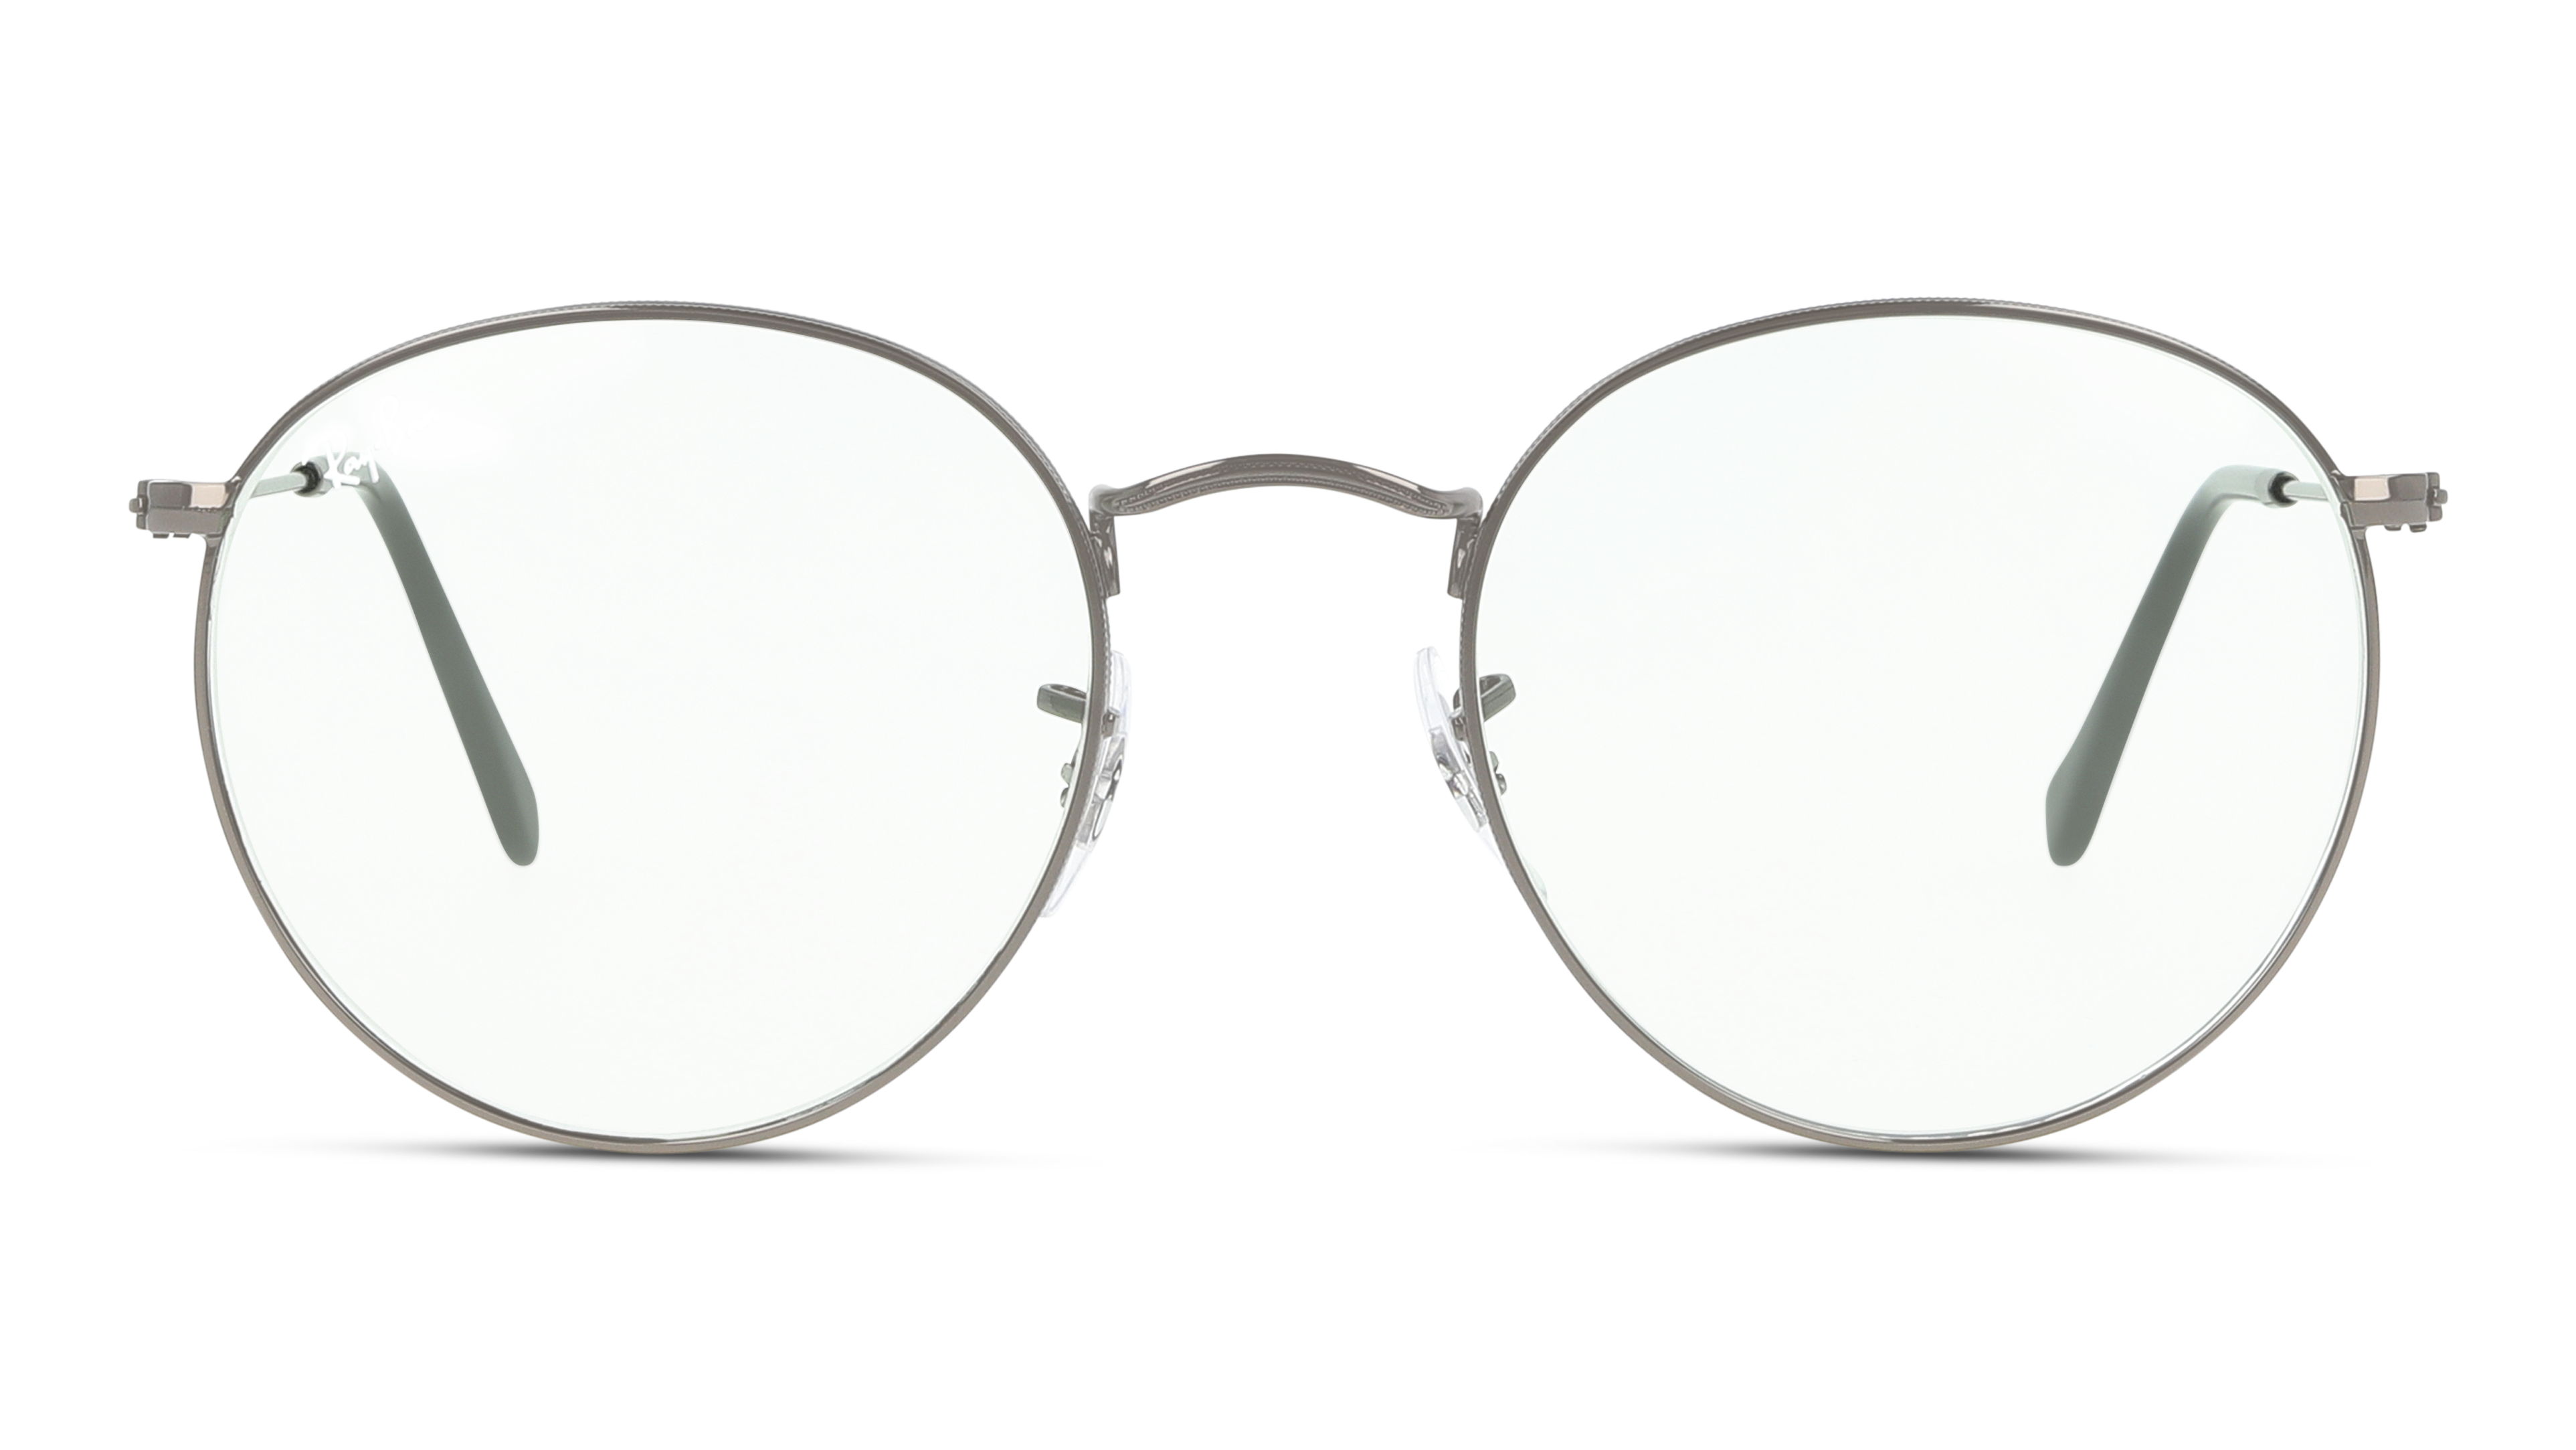 Front Ray-Ban Ray-Ban 0RB3447 004/T1 53/21 Grijs/Groen